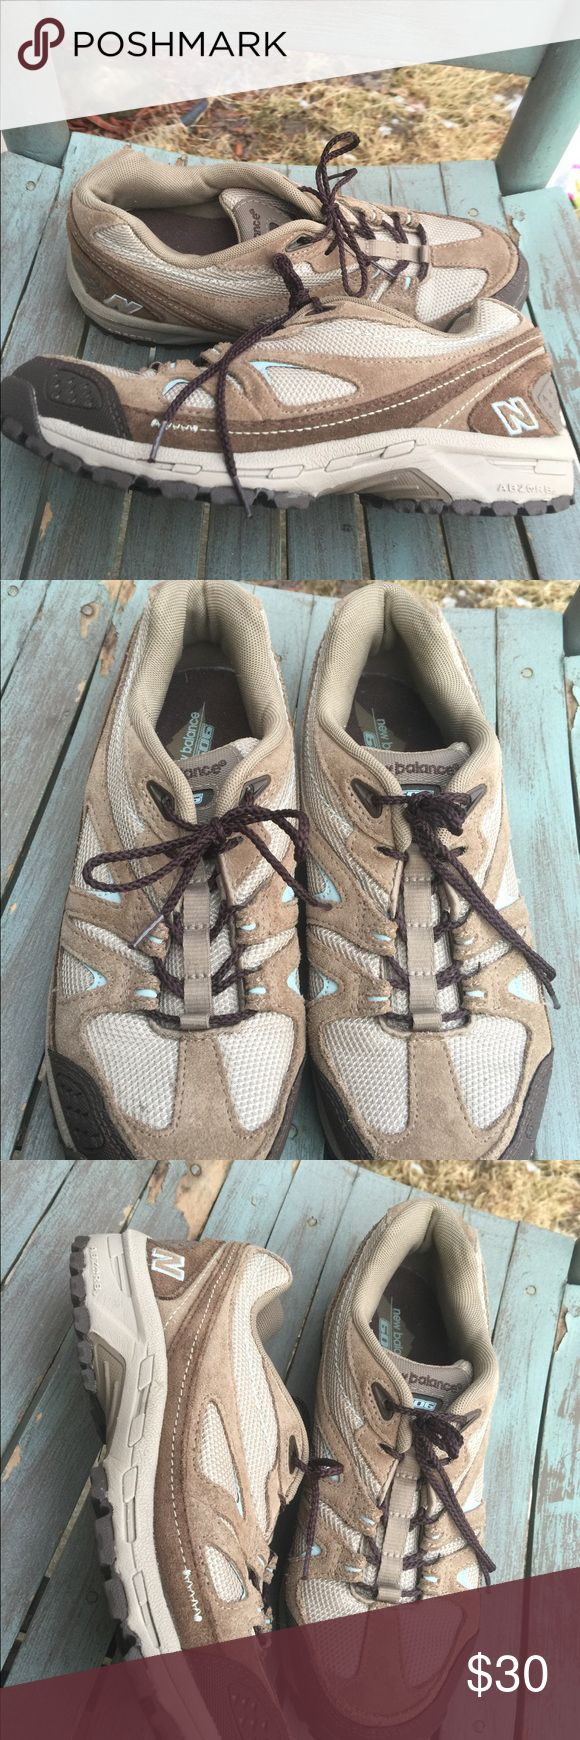 Women's New Balance 606 Trail Running Sneakers 8.5 Women's New Balance 606 Trail Running Sneakers 8.5 Excellent Condition  #2 New Balance Shoes Sneakers